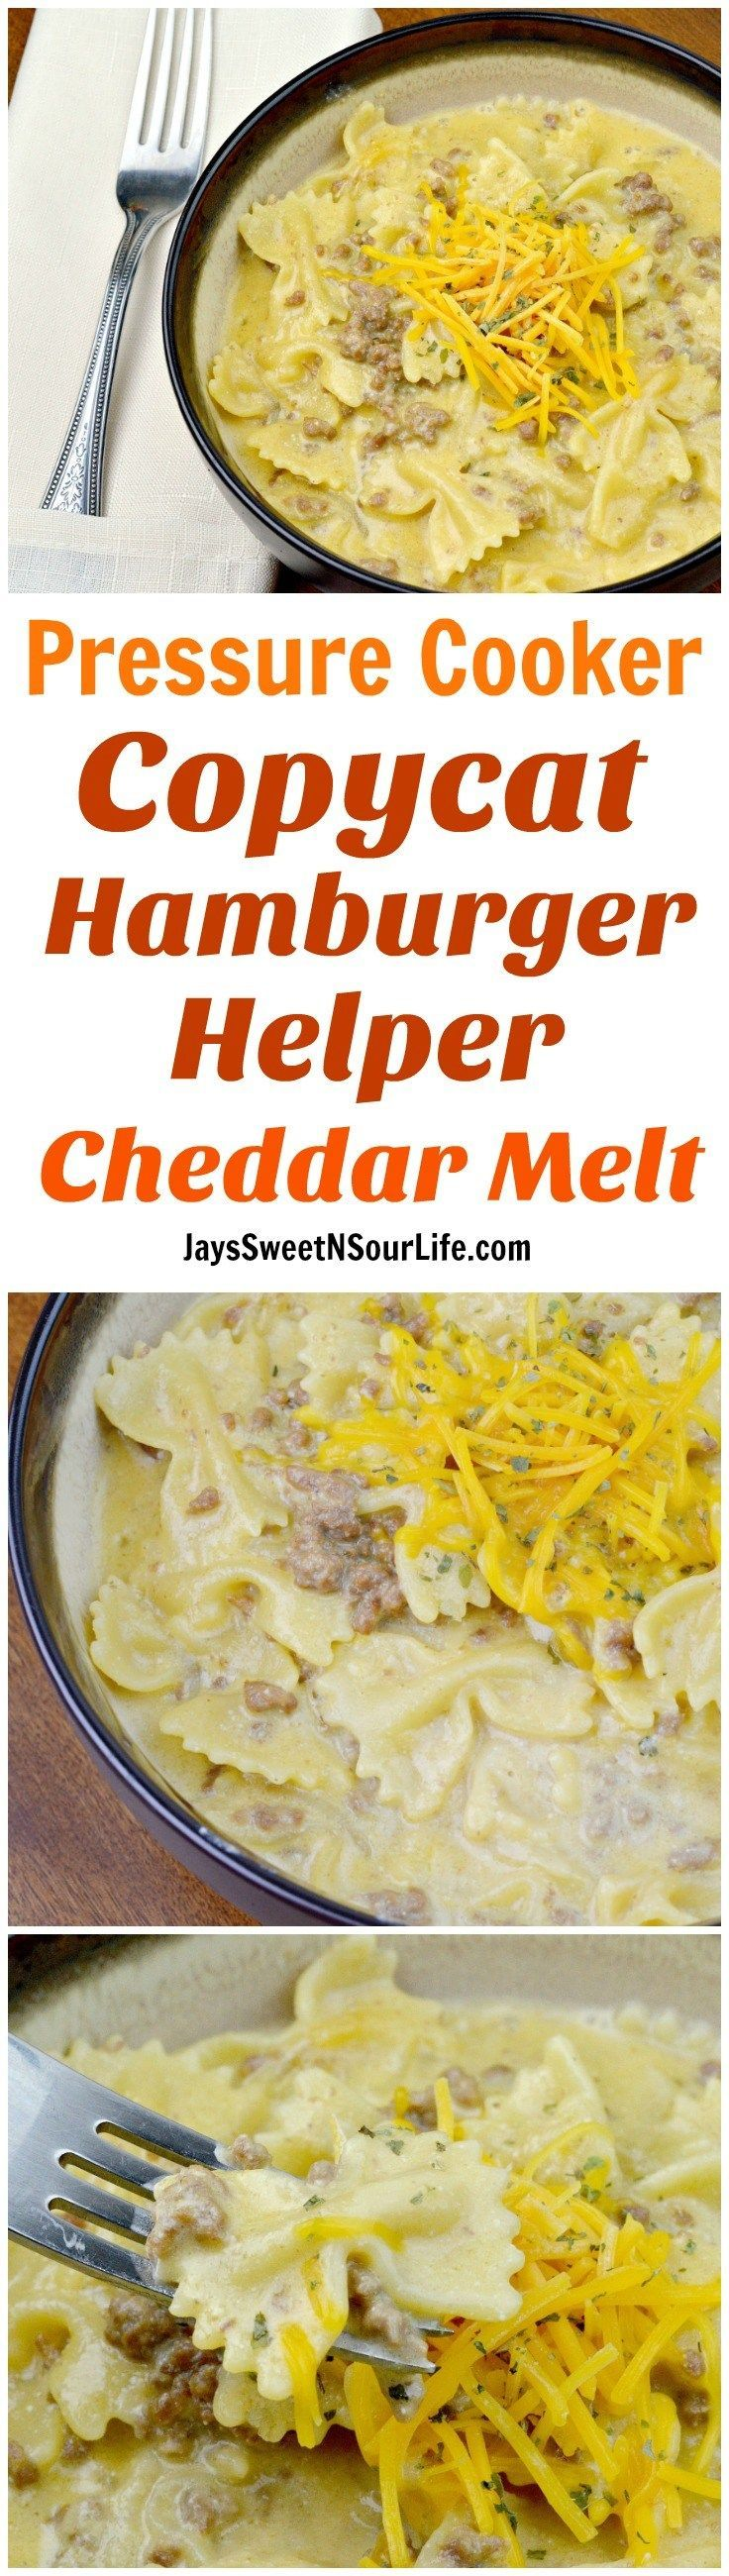 Pressure Cooker Copycat Hamburger Helper Cheddar Melt - Jay's Sweet N Sour Life Blog